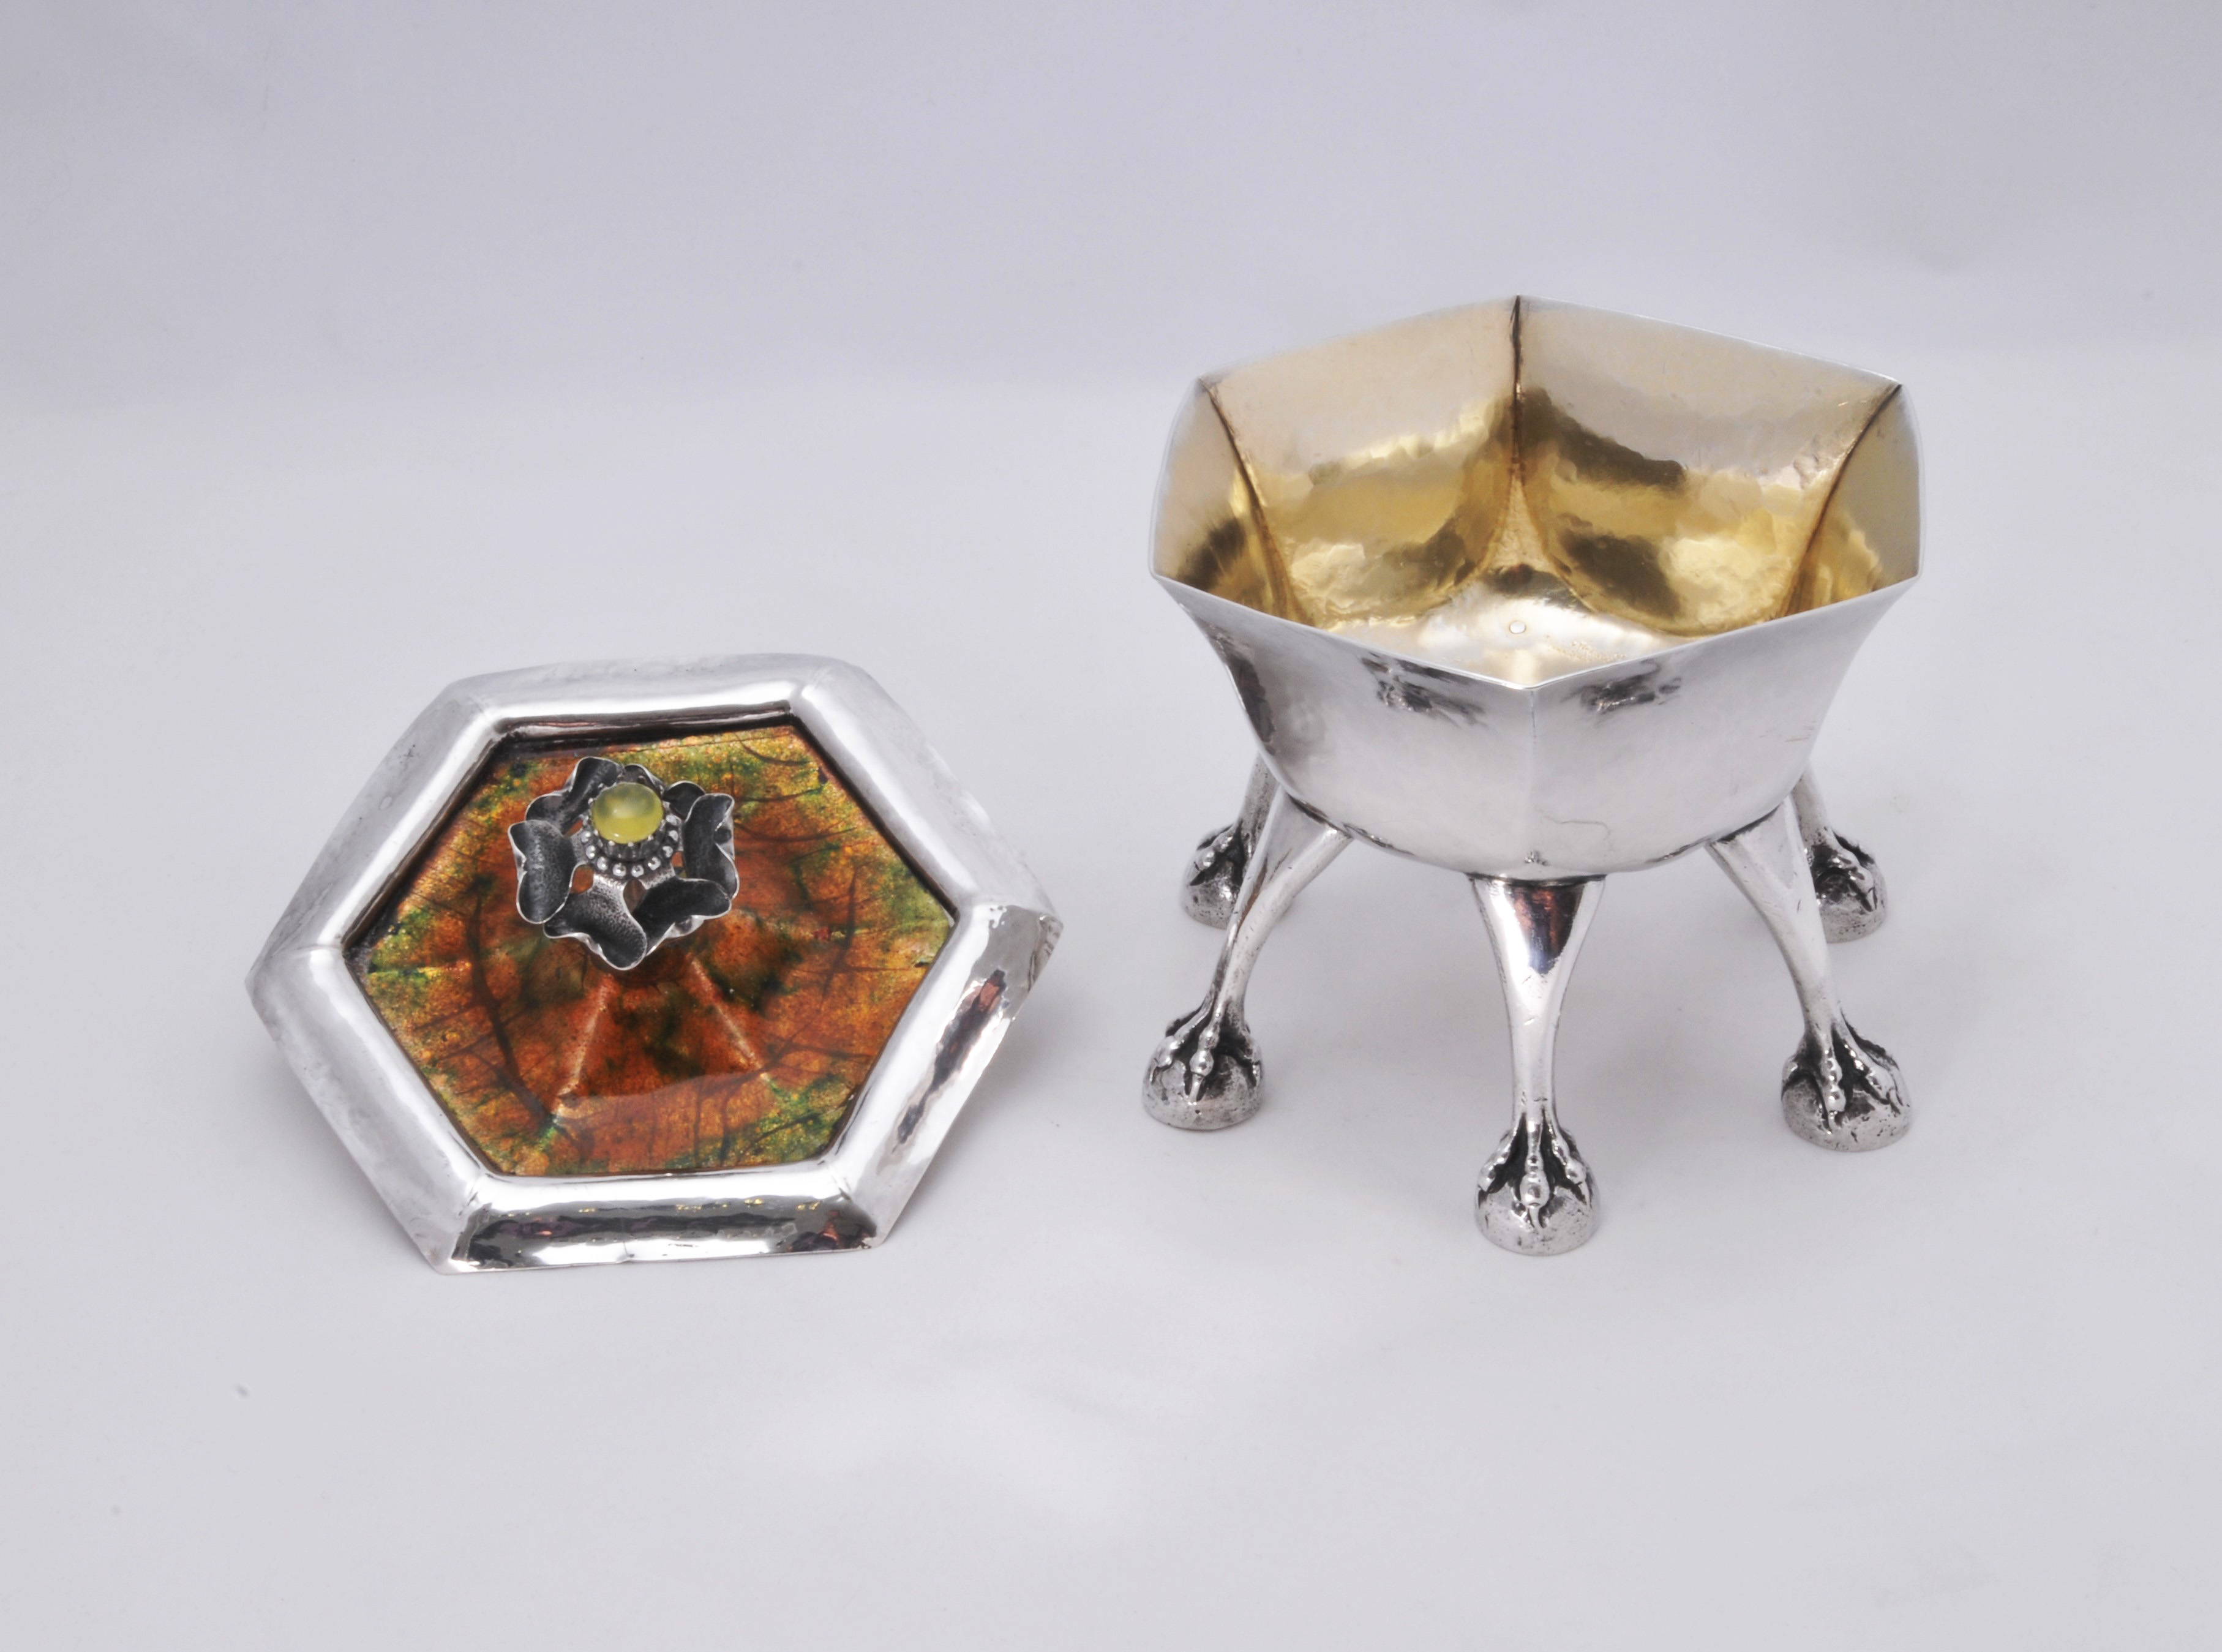 Charles Ashbee Guild of Handicraft silver cup